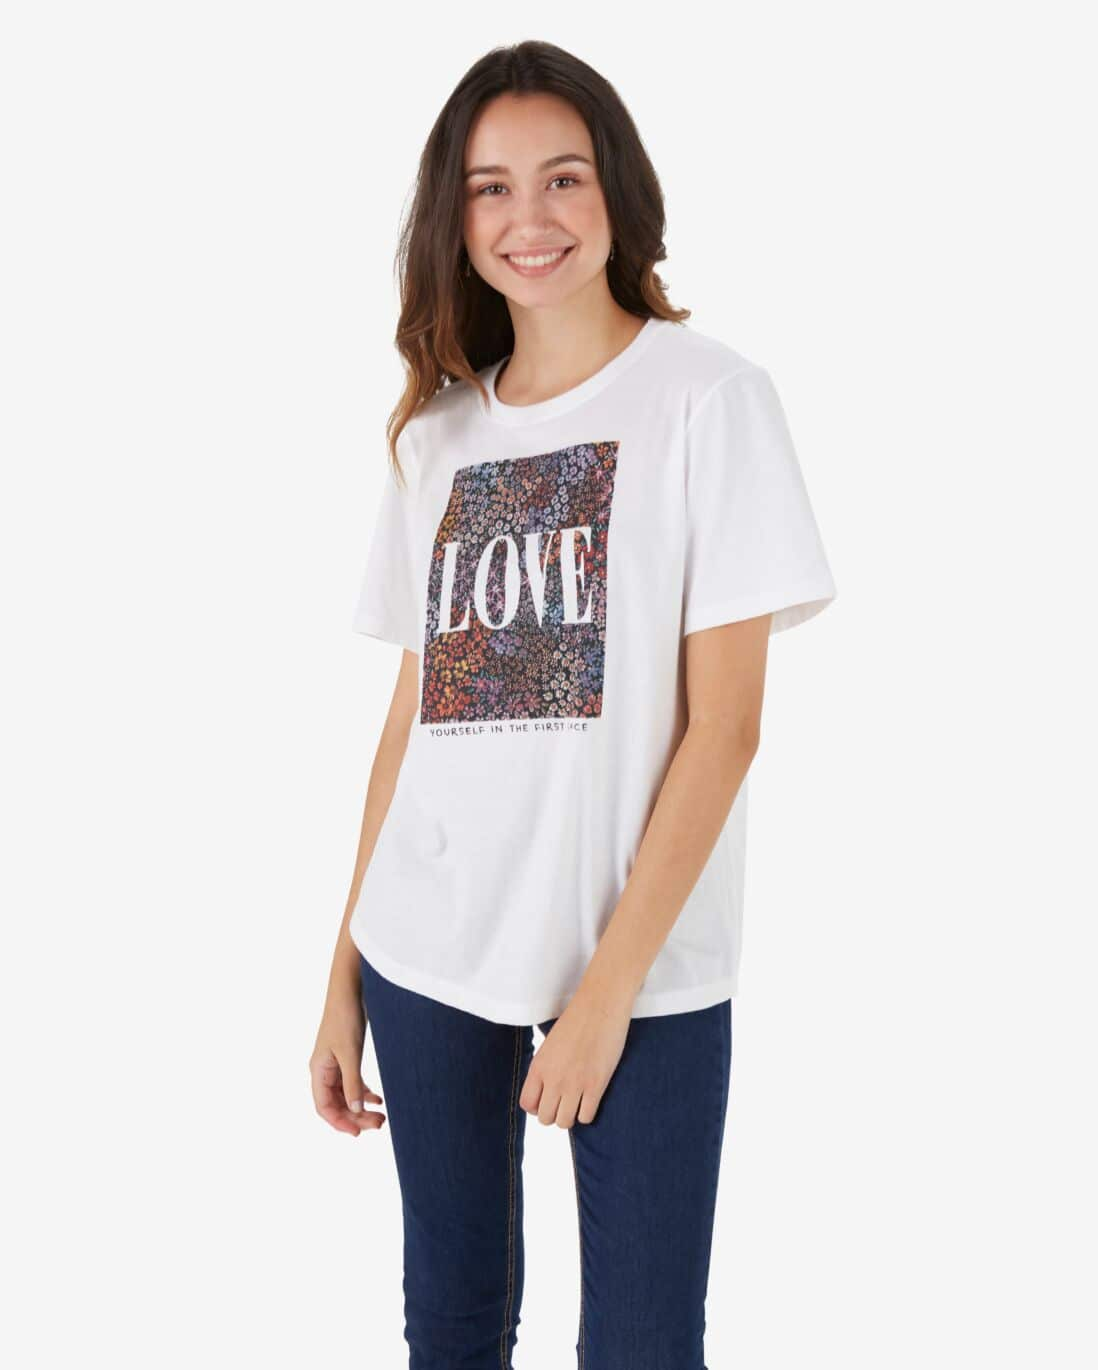 Camiseta Juvenil Alongada Manga Curta Love - Branco